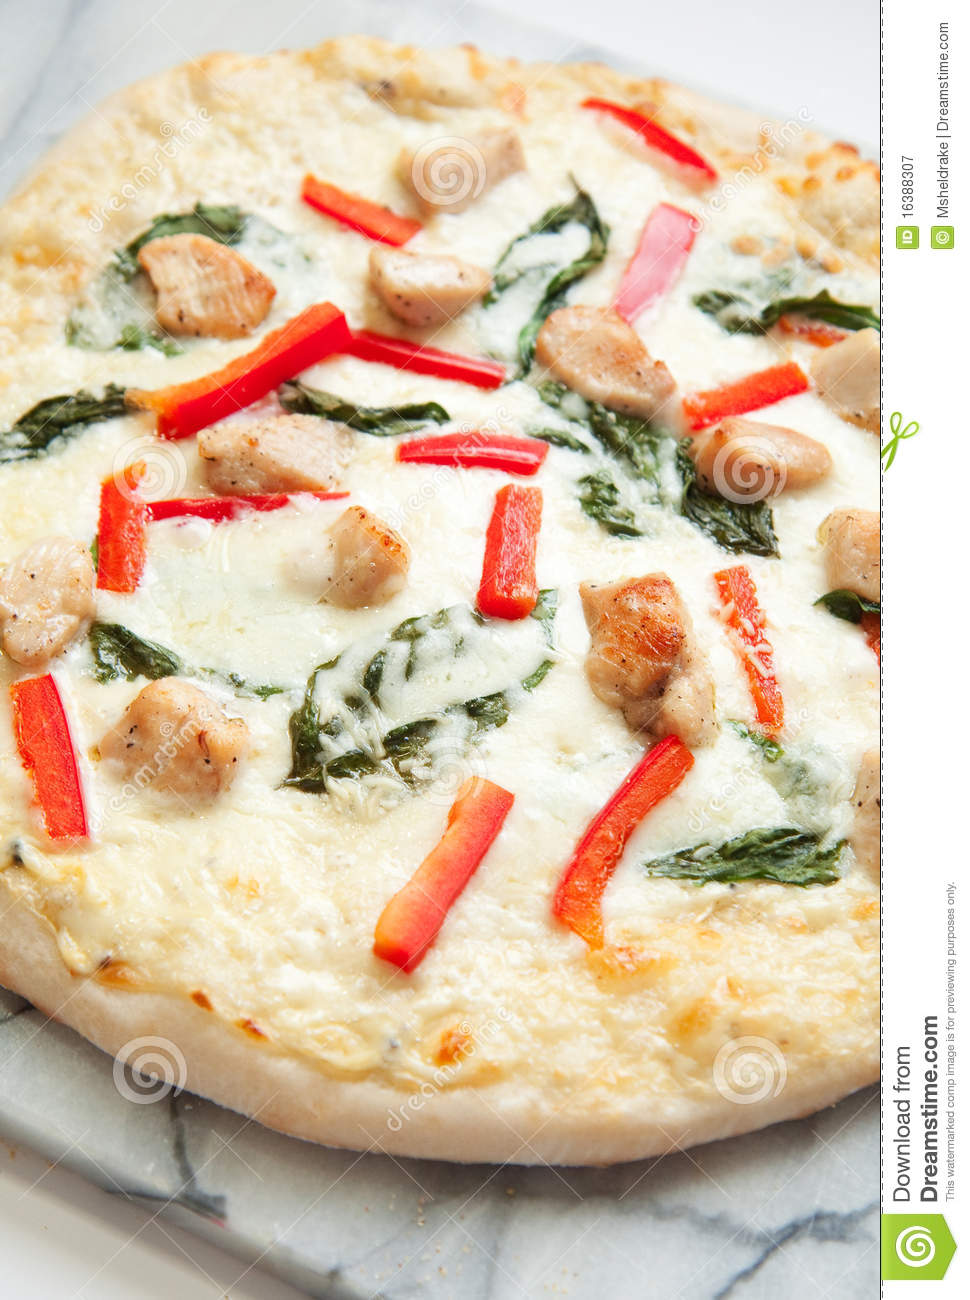 Chicken Pizza Royalty Free Stock Photography - Image: 16388307